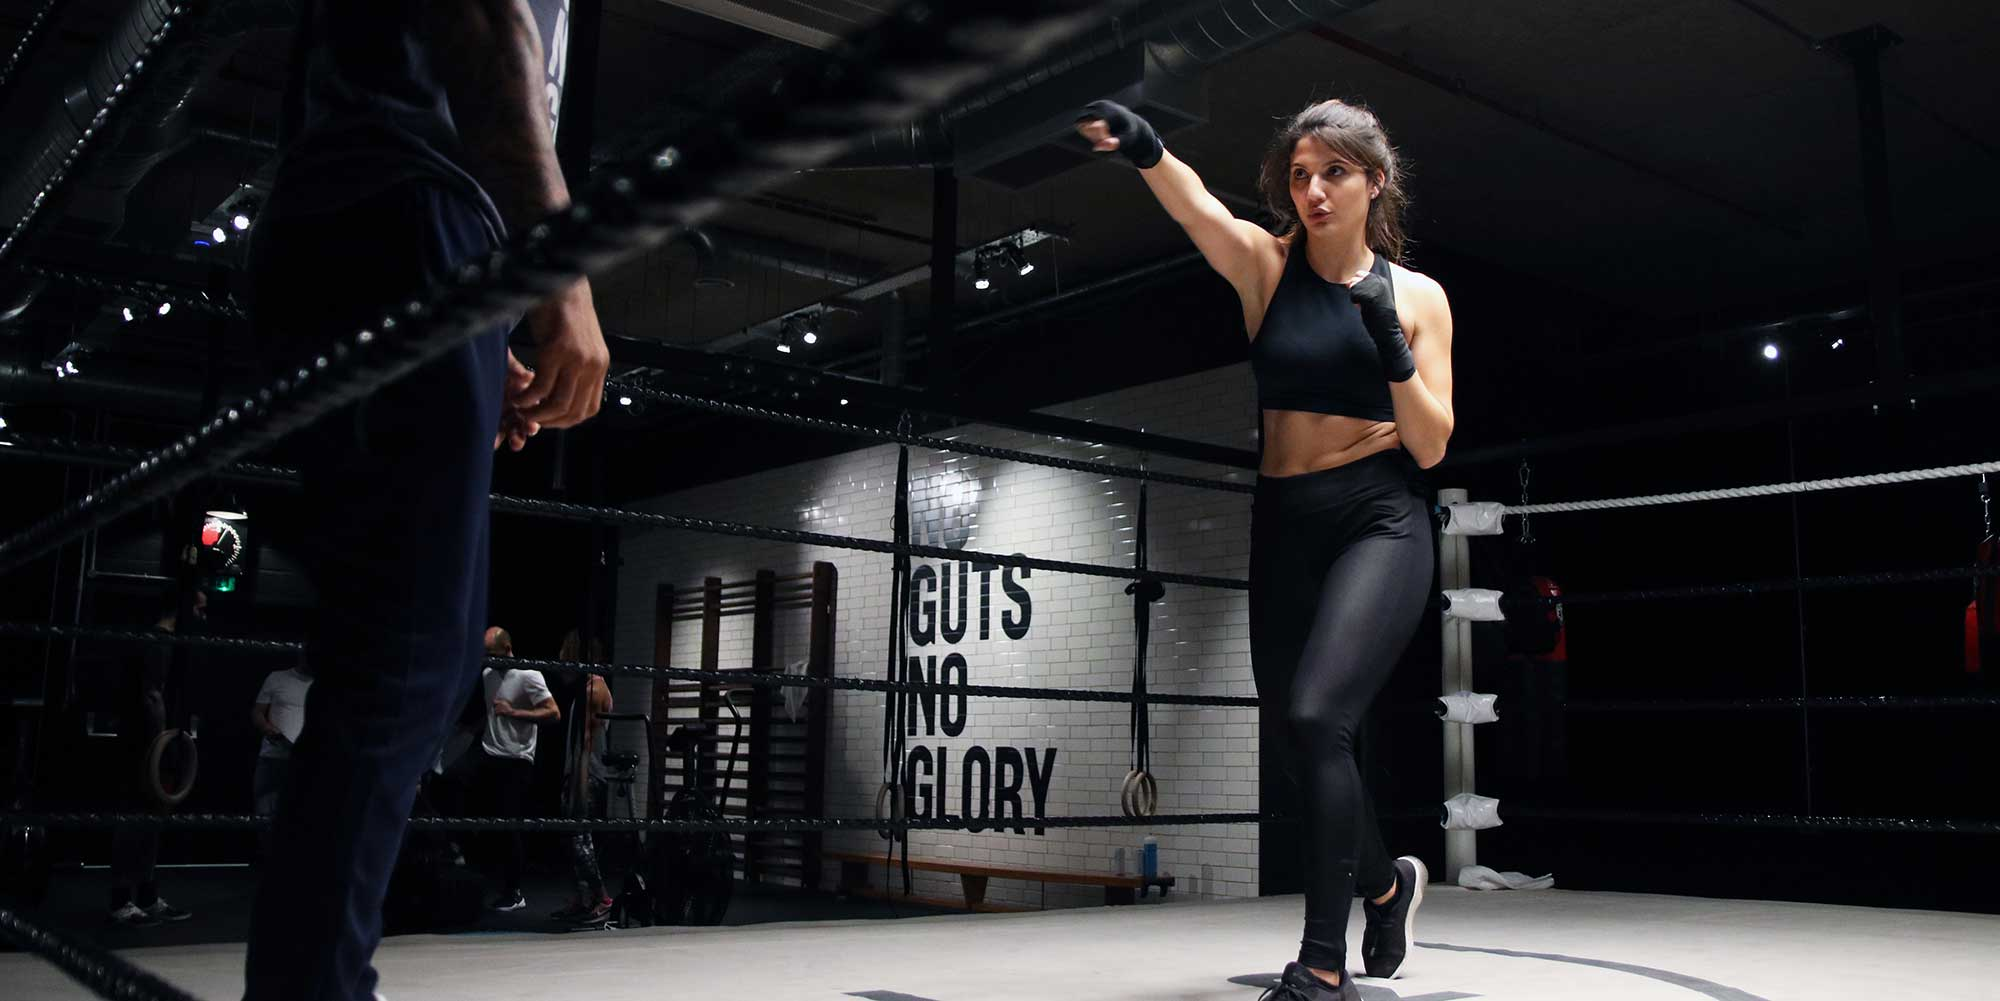 photo of person boxing training